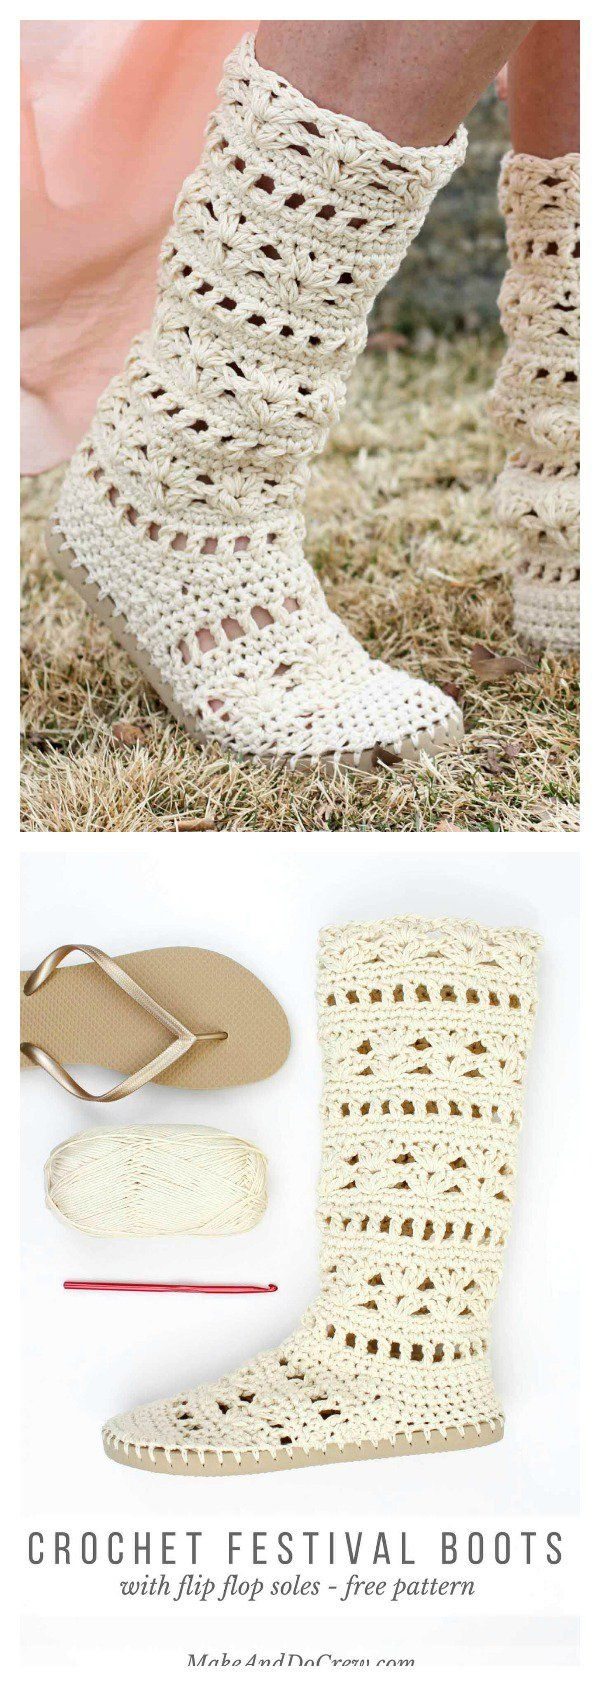 How to Crochet Slippers with Flip Flop Soles | Free pattern ...